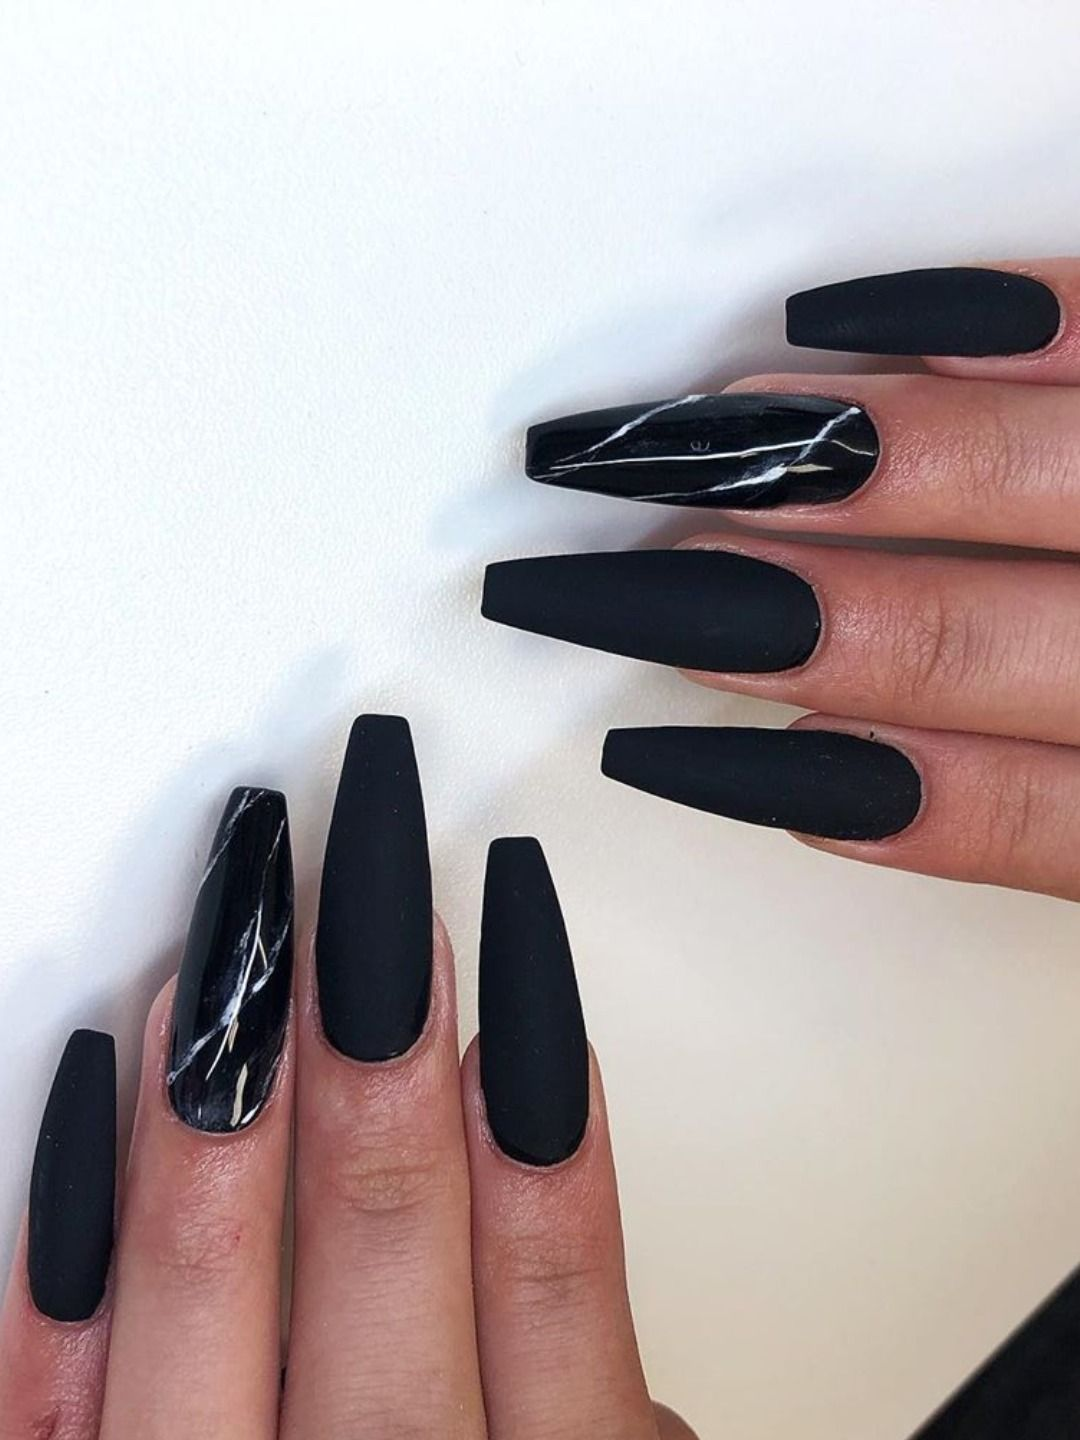 The Most Beautiful Black Winter Nails Ideas In 2020 Gold Glitter Nails Long Acrylic Nails Coffin Black Marble Nails